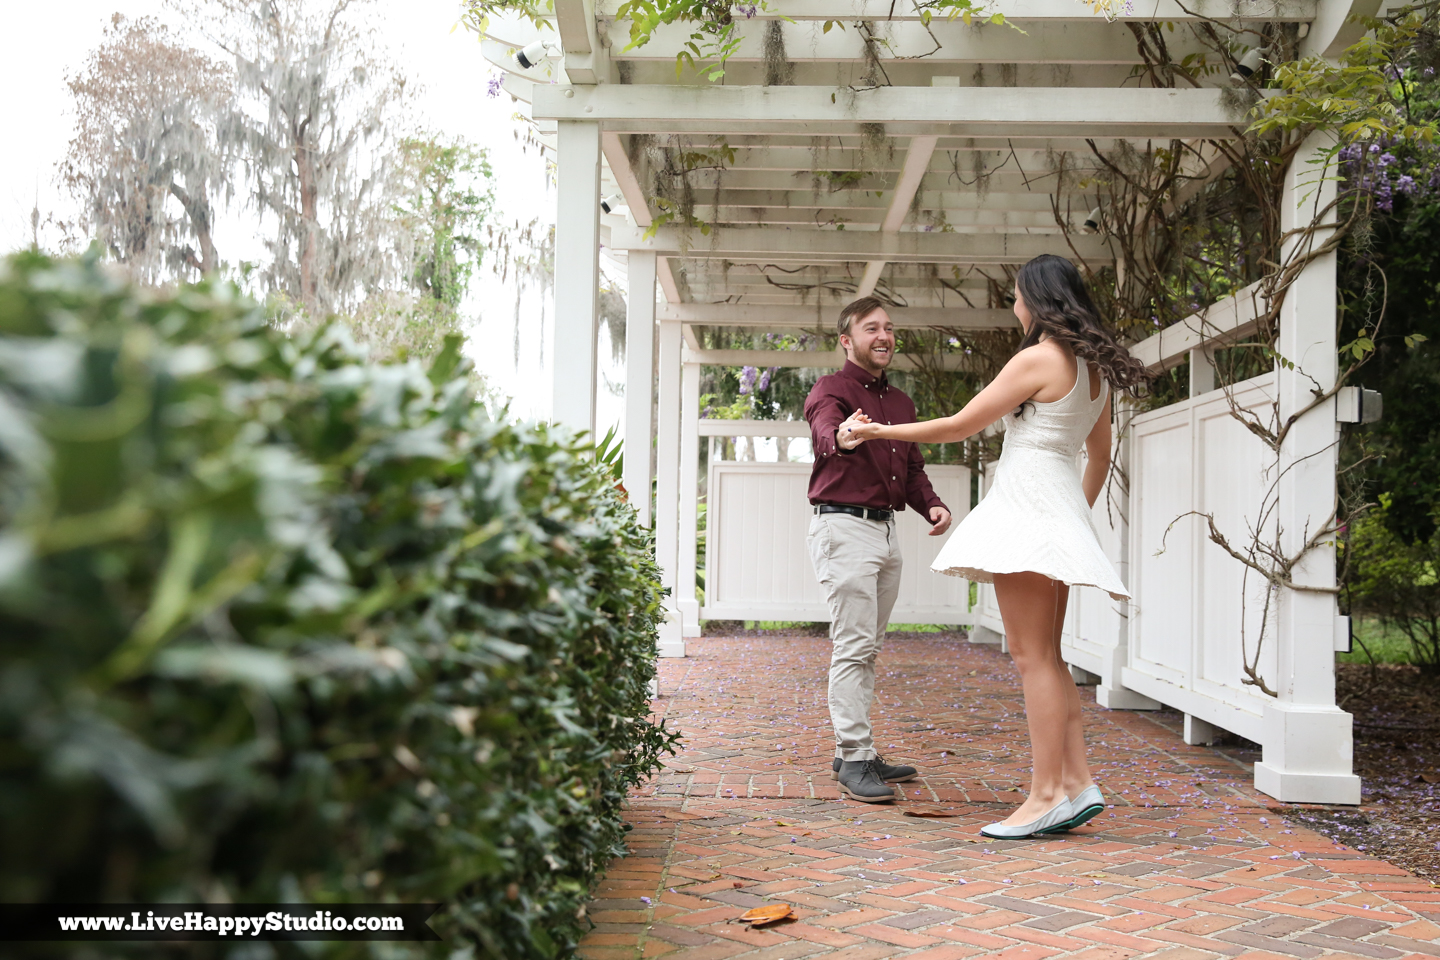 www.livehappystudio.com-cypress-grove-park-orlando-florida-engagement-photographer-candid-dancing-couple2.jpg